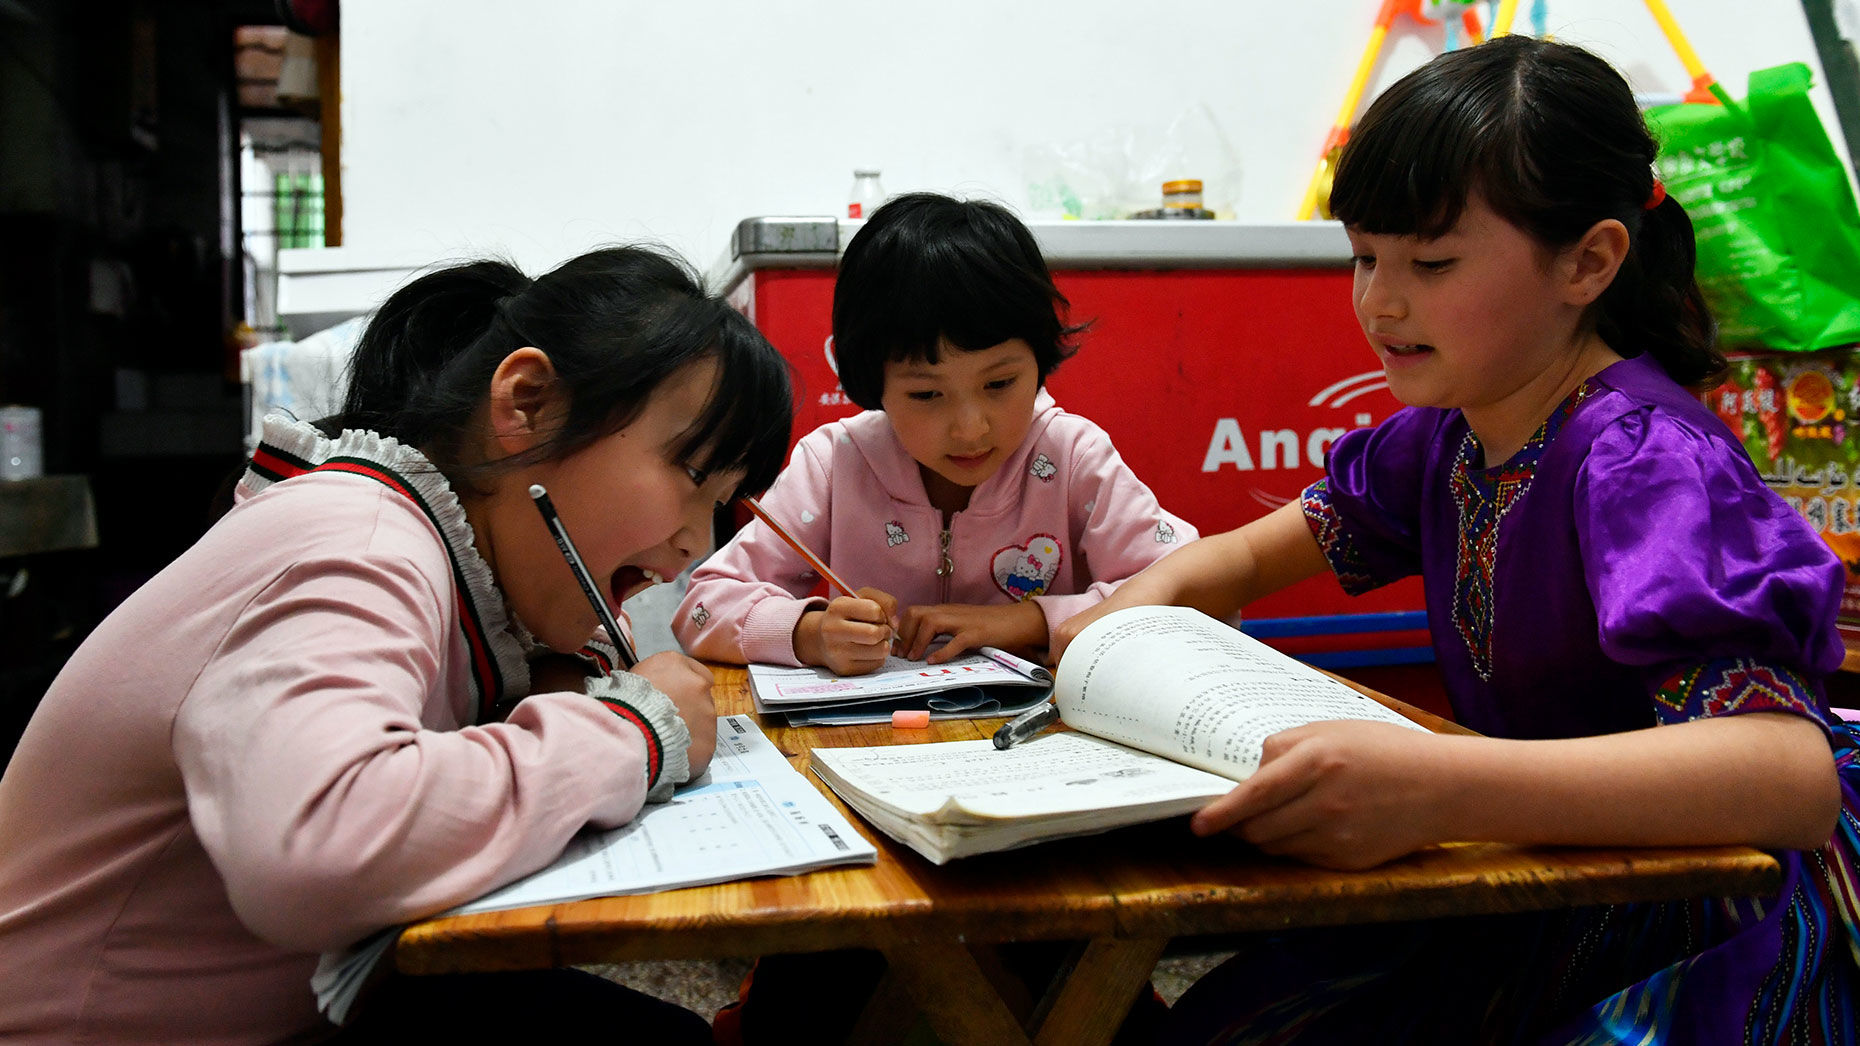 Primary school students in China doing homework 